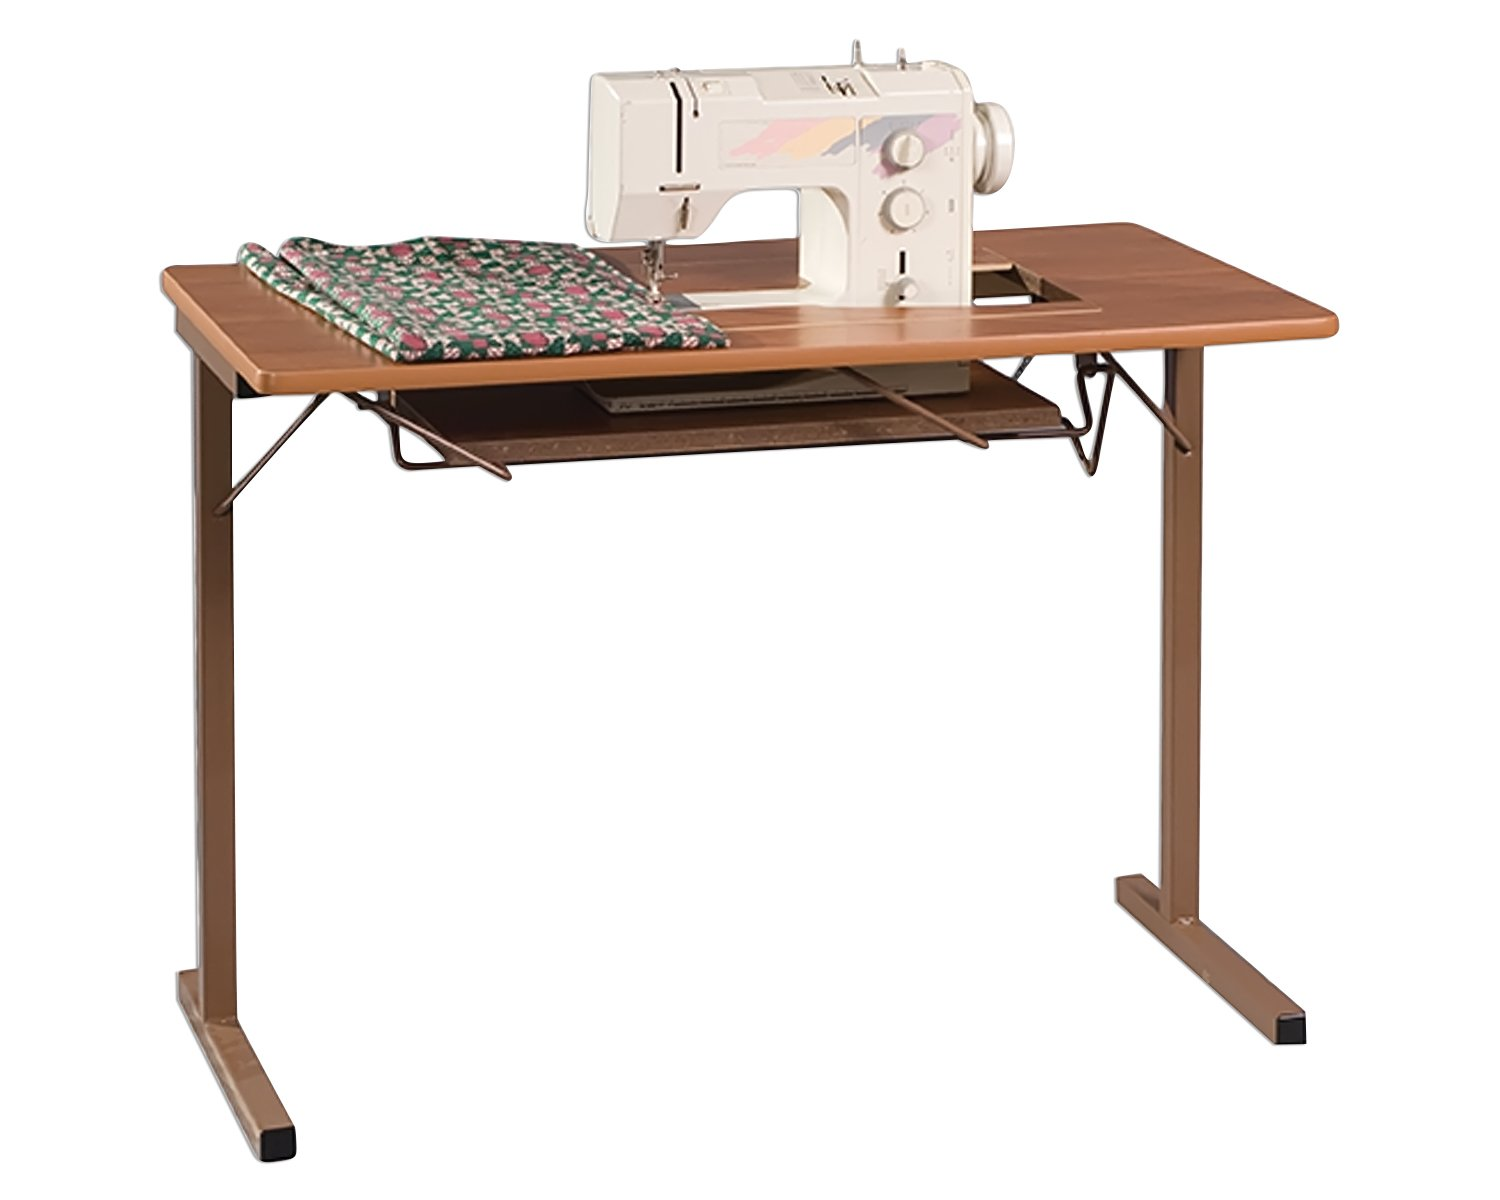 Portable Sewing Machine Table.Model 299 Portable Sewing Table Quick Lift Portable Sewing Table 24 X 12 5 Opening Rustic Maple